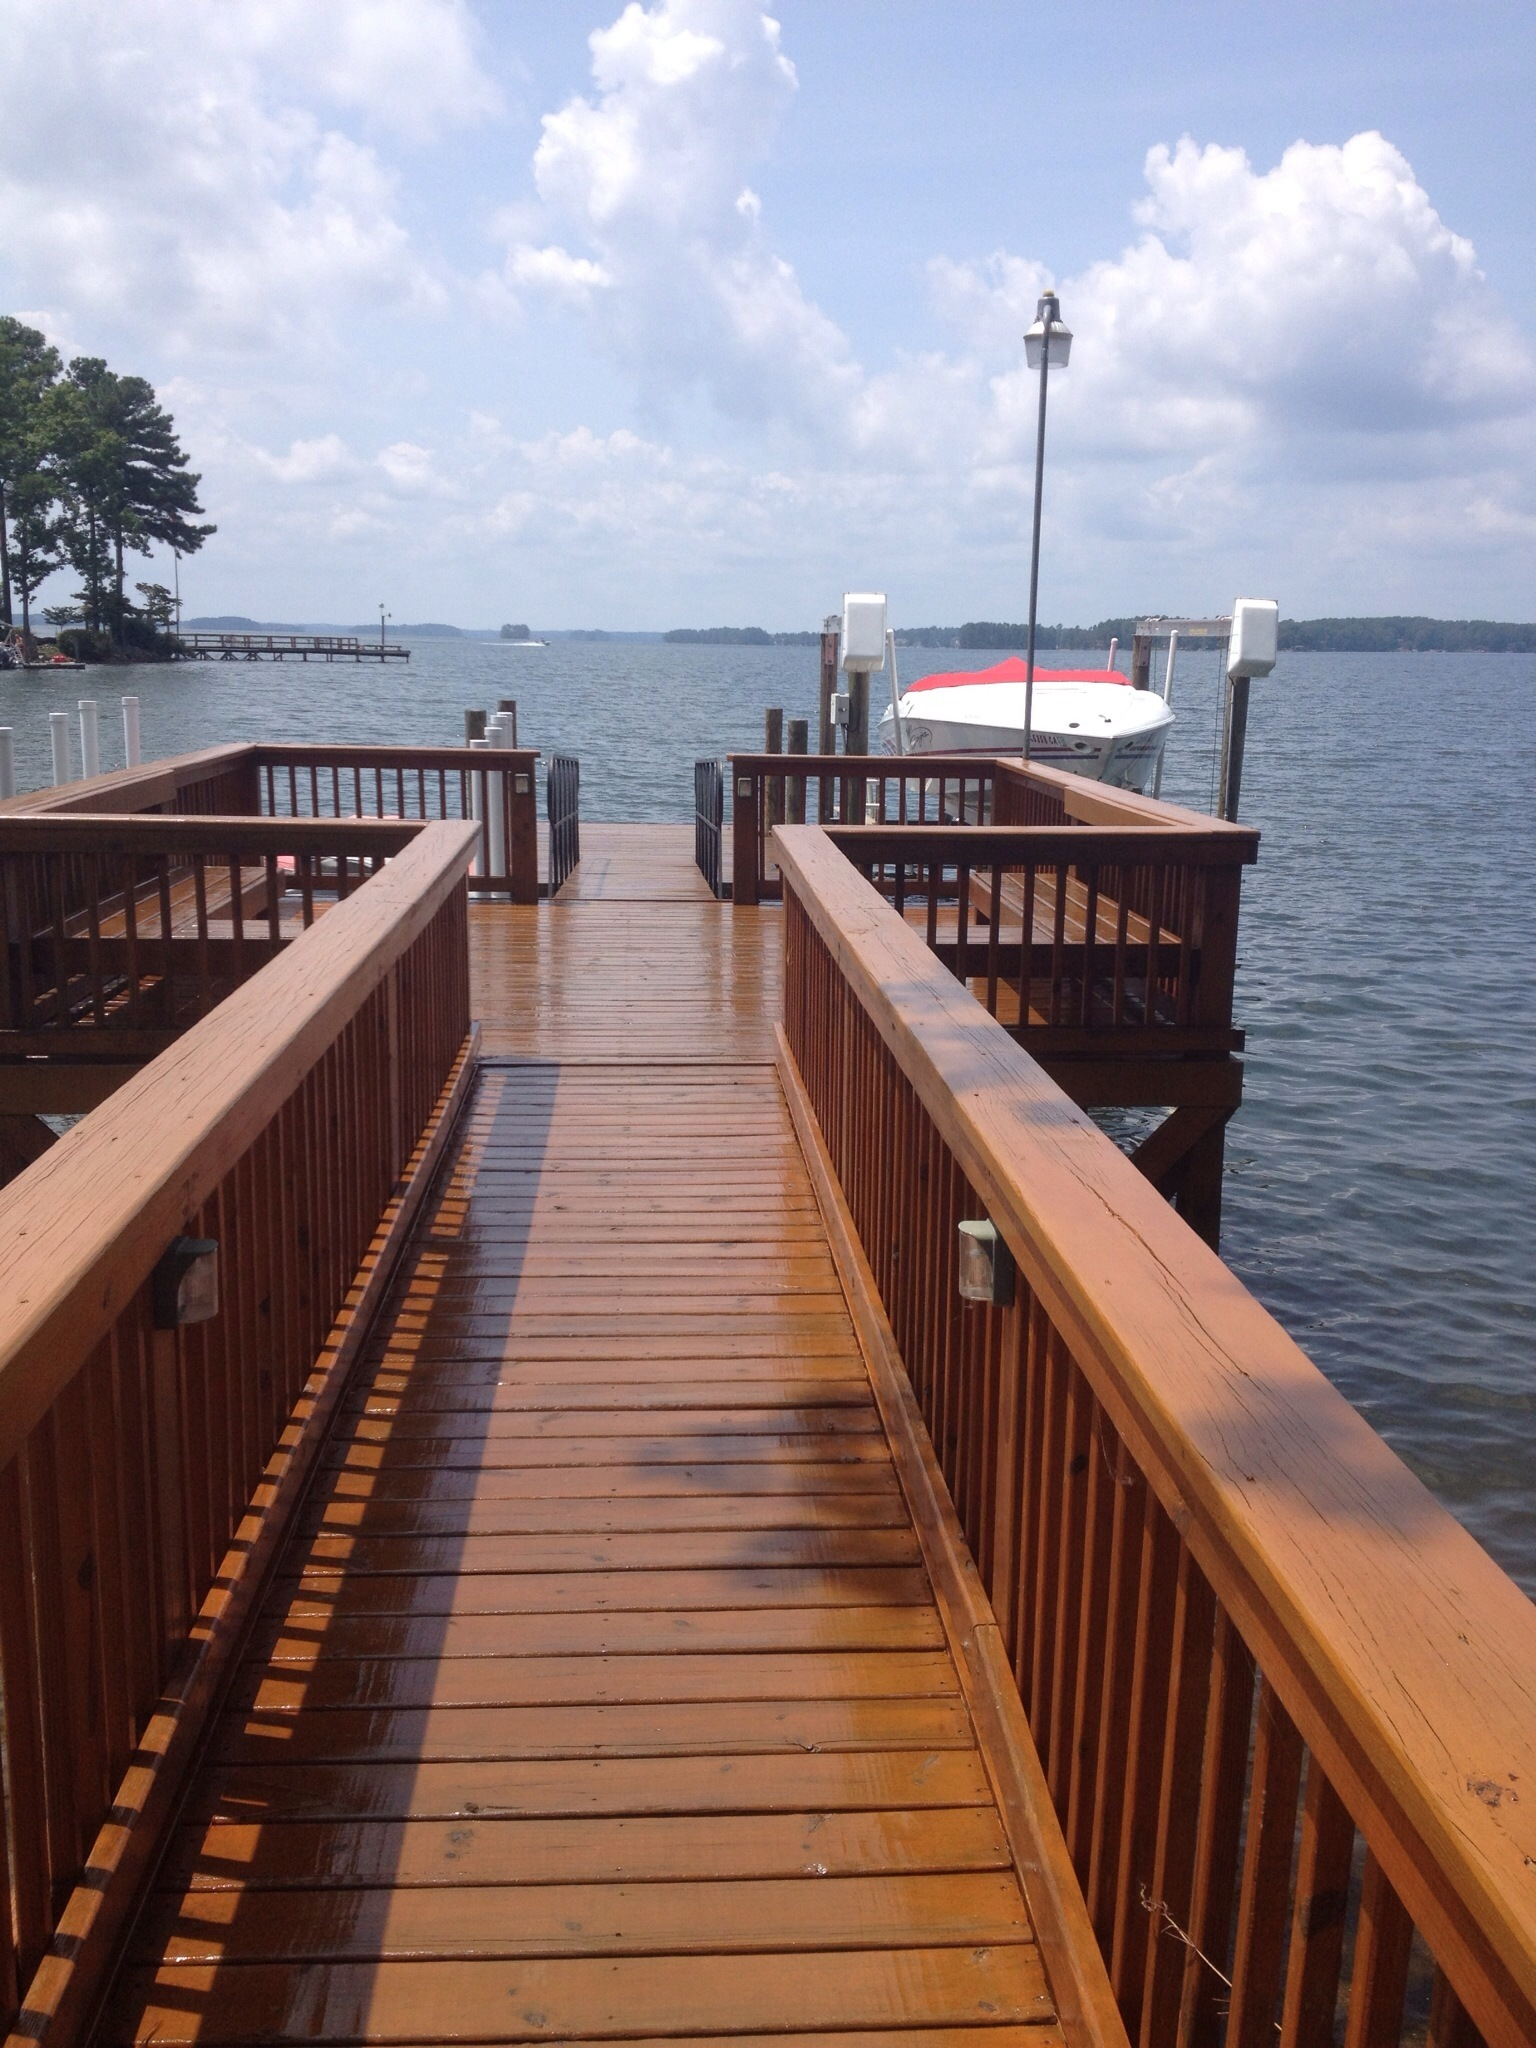 Dock pix - Jeff Blair -- 2013-08-09.jpg